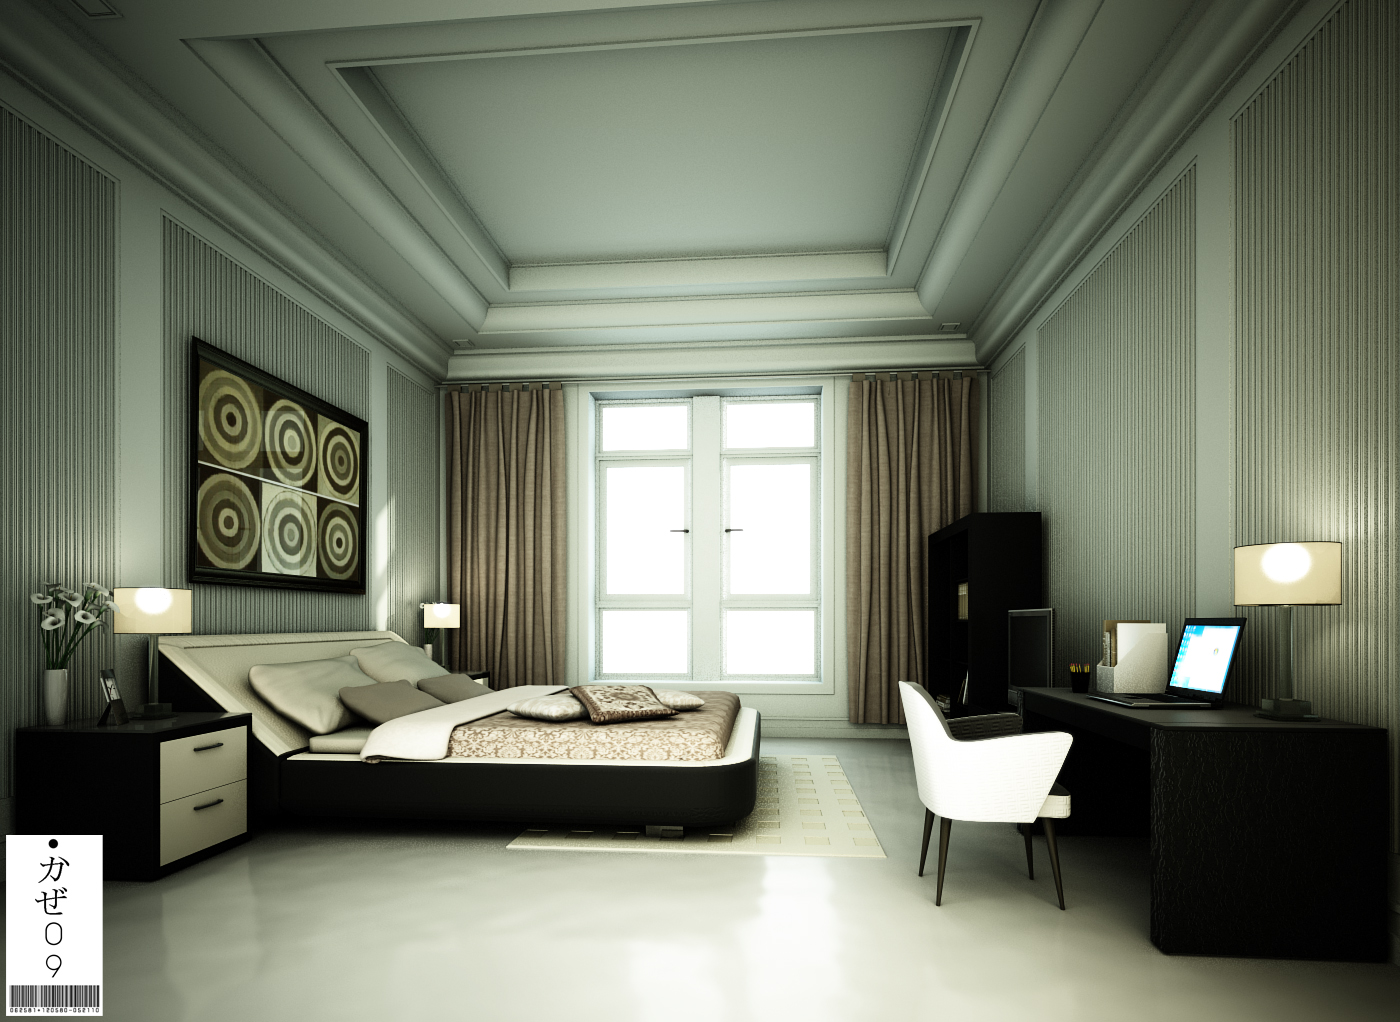 Modern classic by kaze09 on deviantart for Modern classic decor